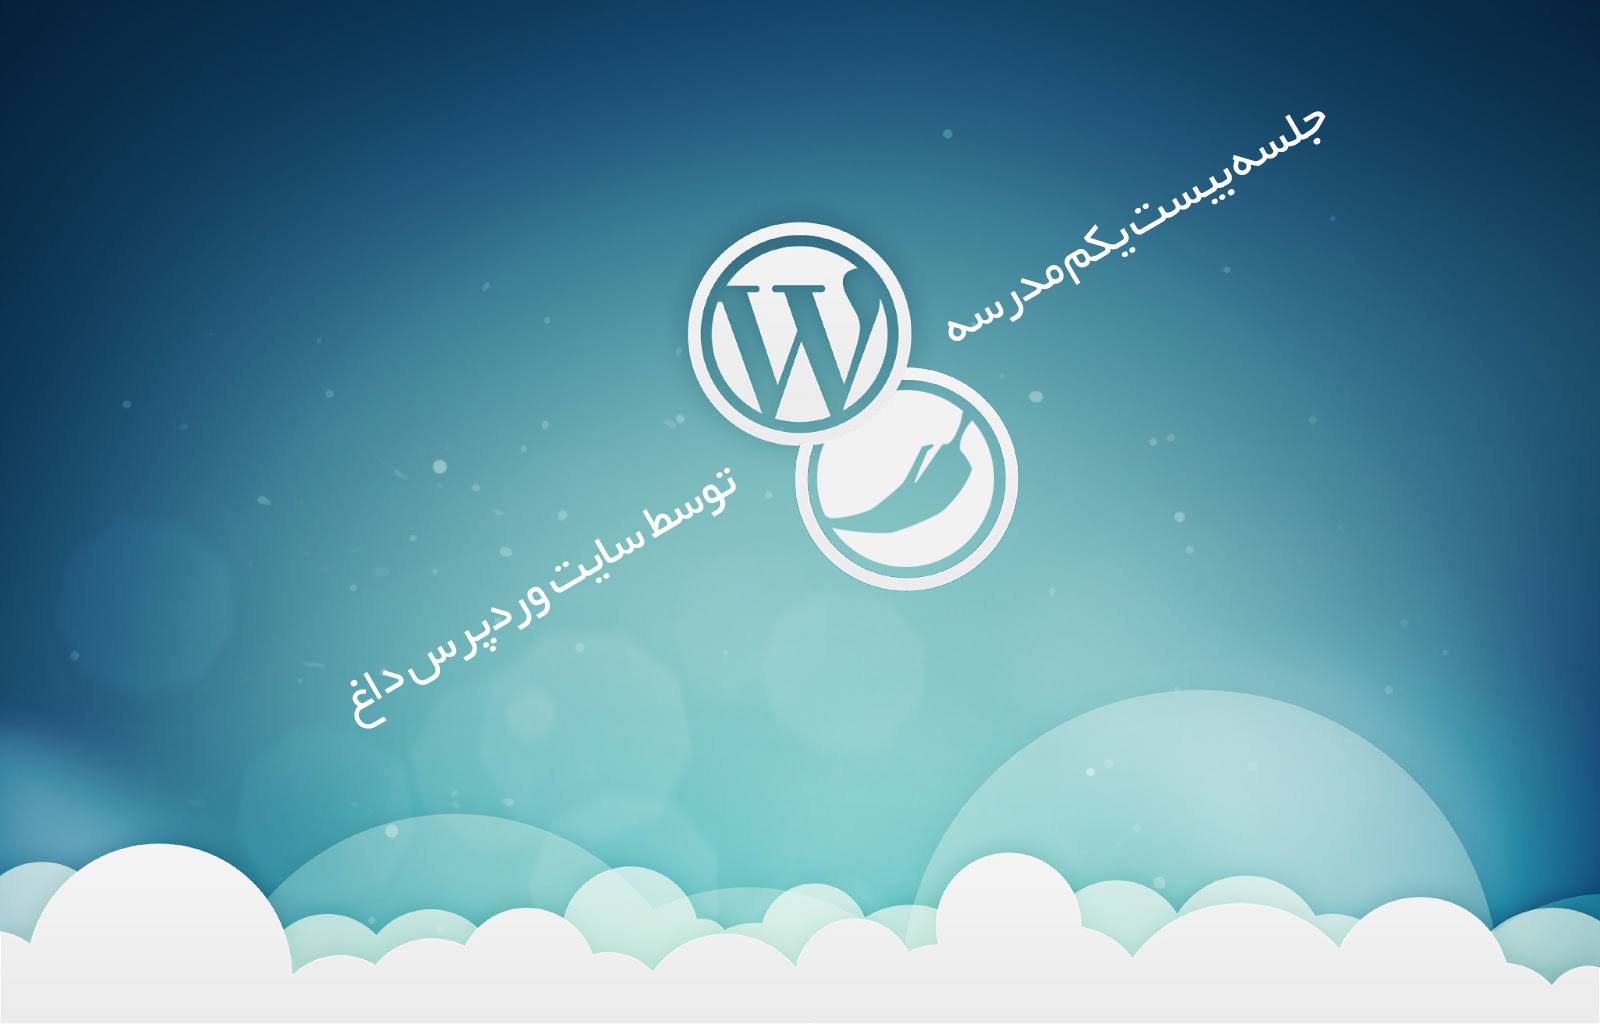 school-wordpress-redwp-21